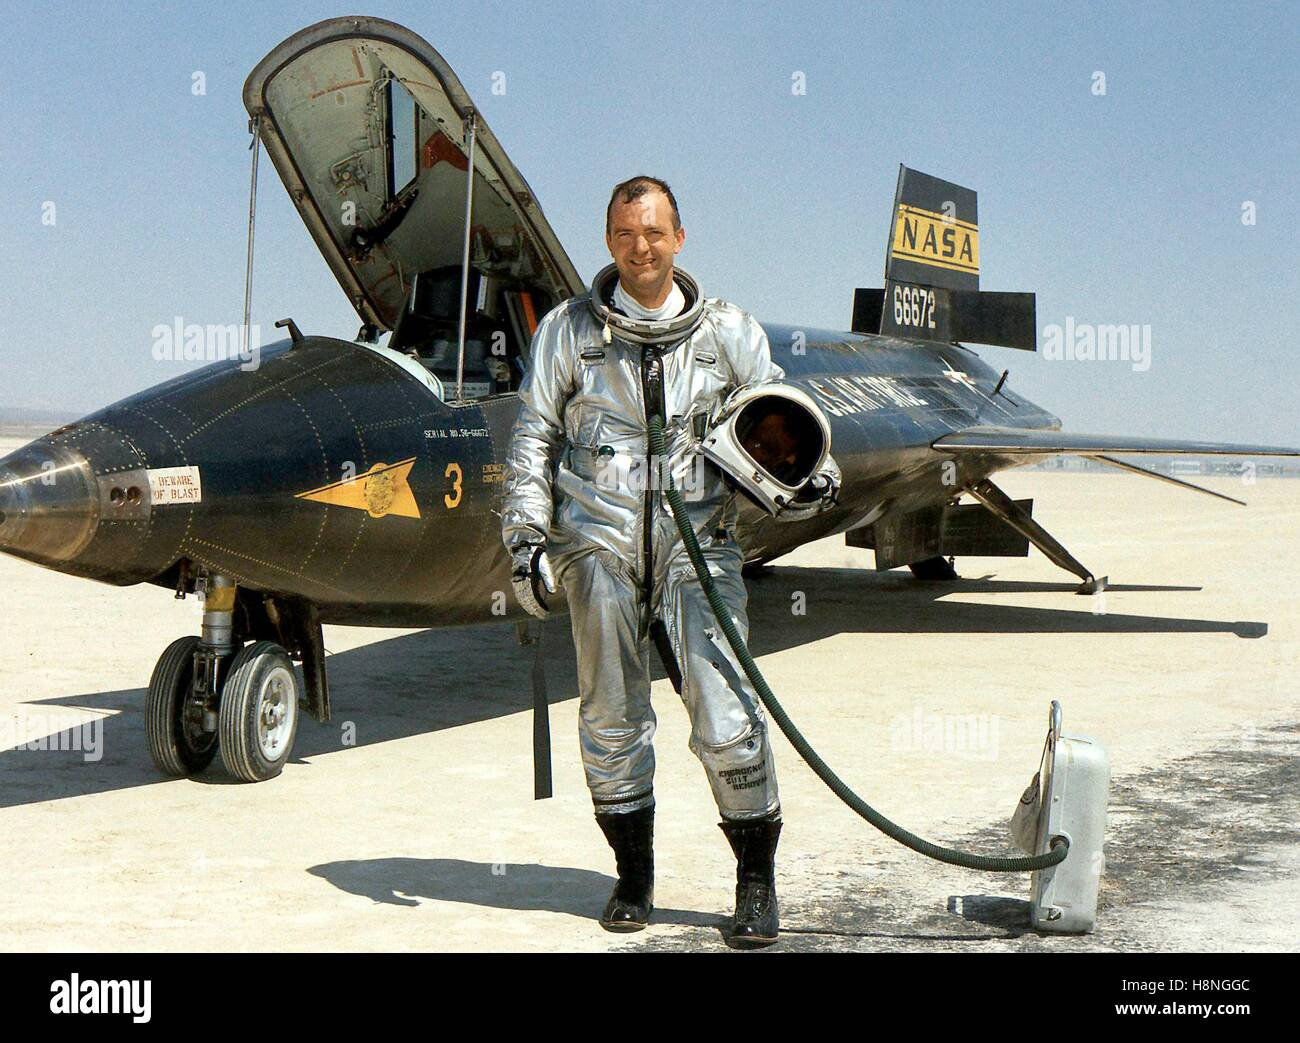 NASA astronaut and research pilot Bill Dana stands next to the North American X-15 hypersonic rocket-powered aircraft - Stock Image